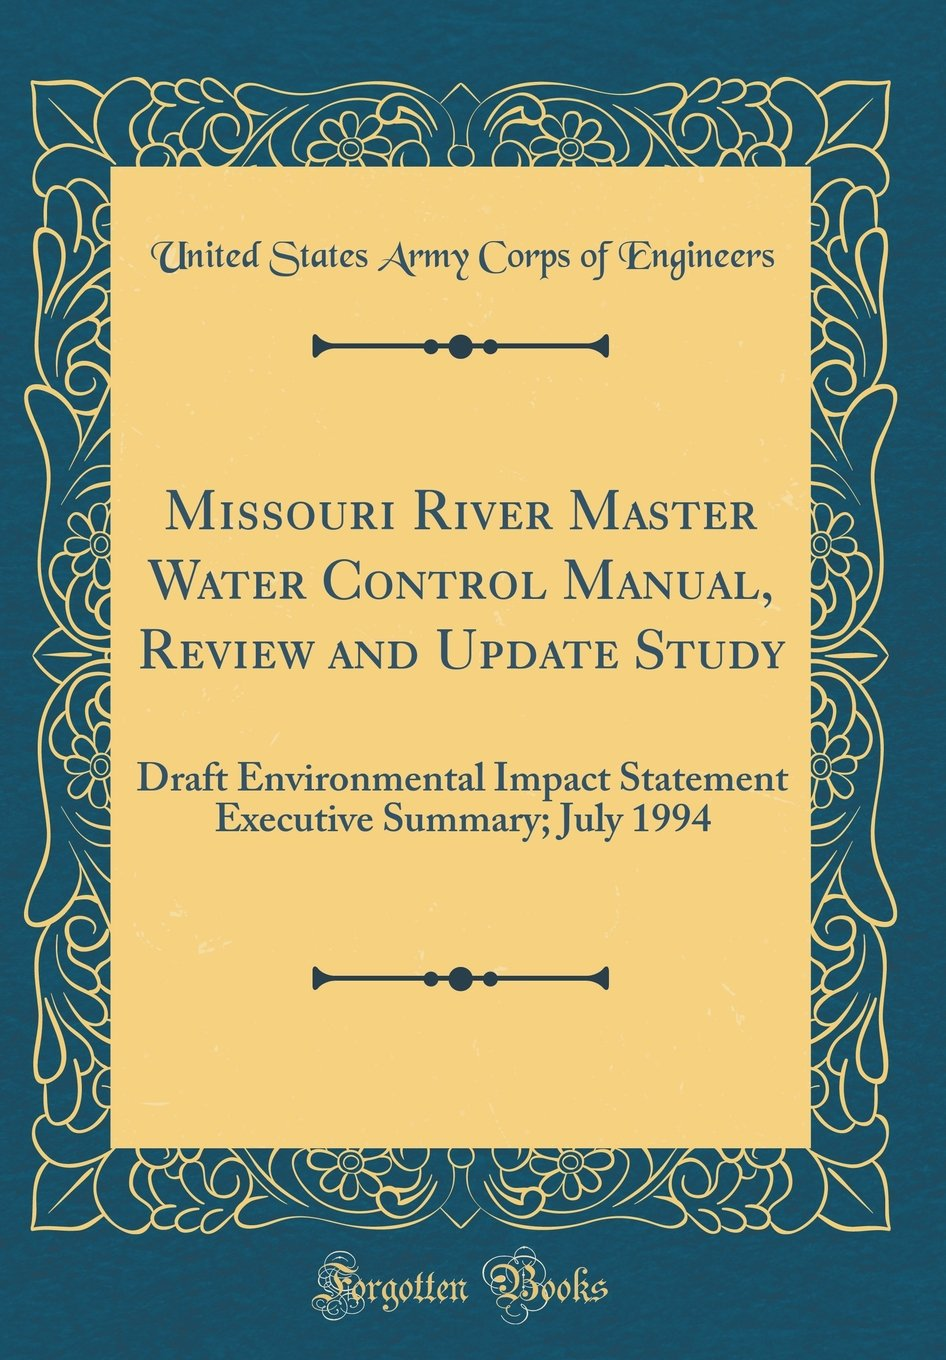 Missouri River Master Water Control Manual, Review and Update Study: Draft Environmental Impact Statement Executive Summary; July 1994 (Classic Reprint) pdf